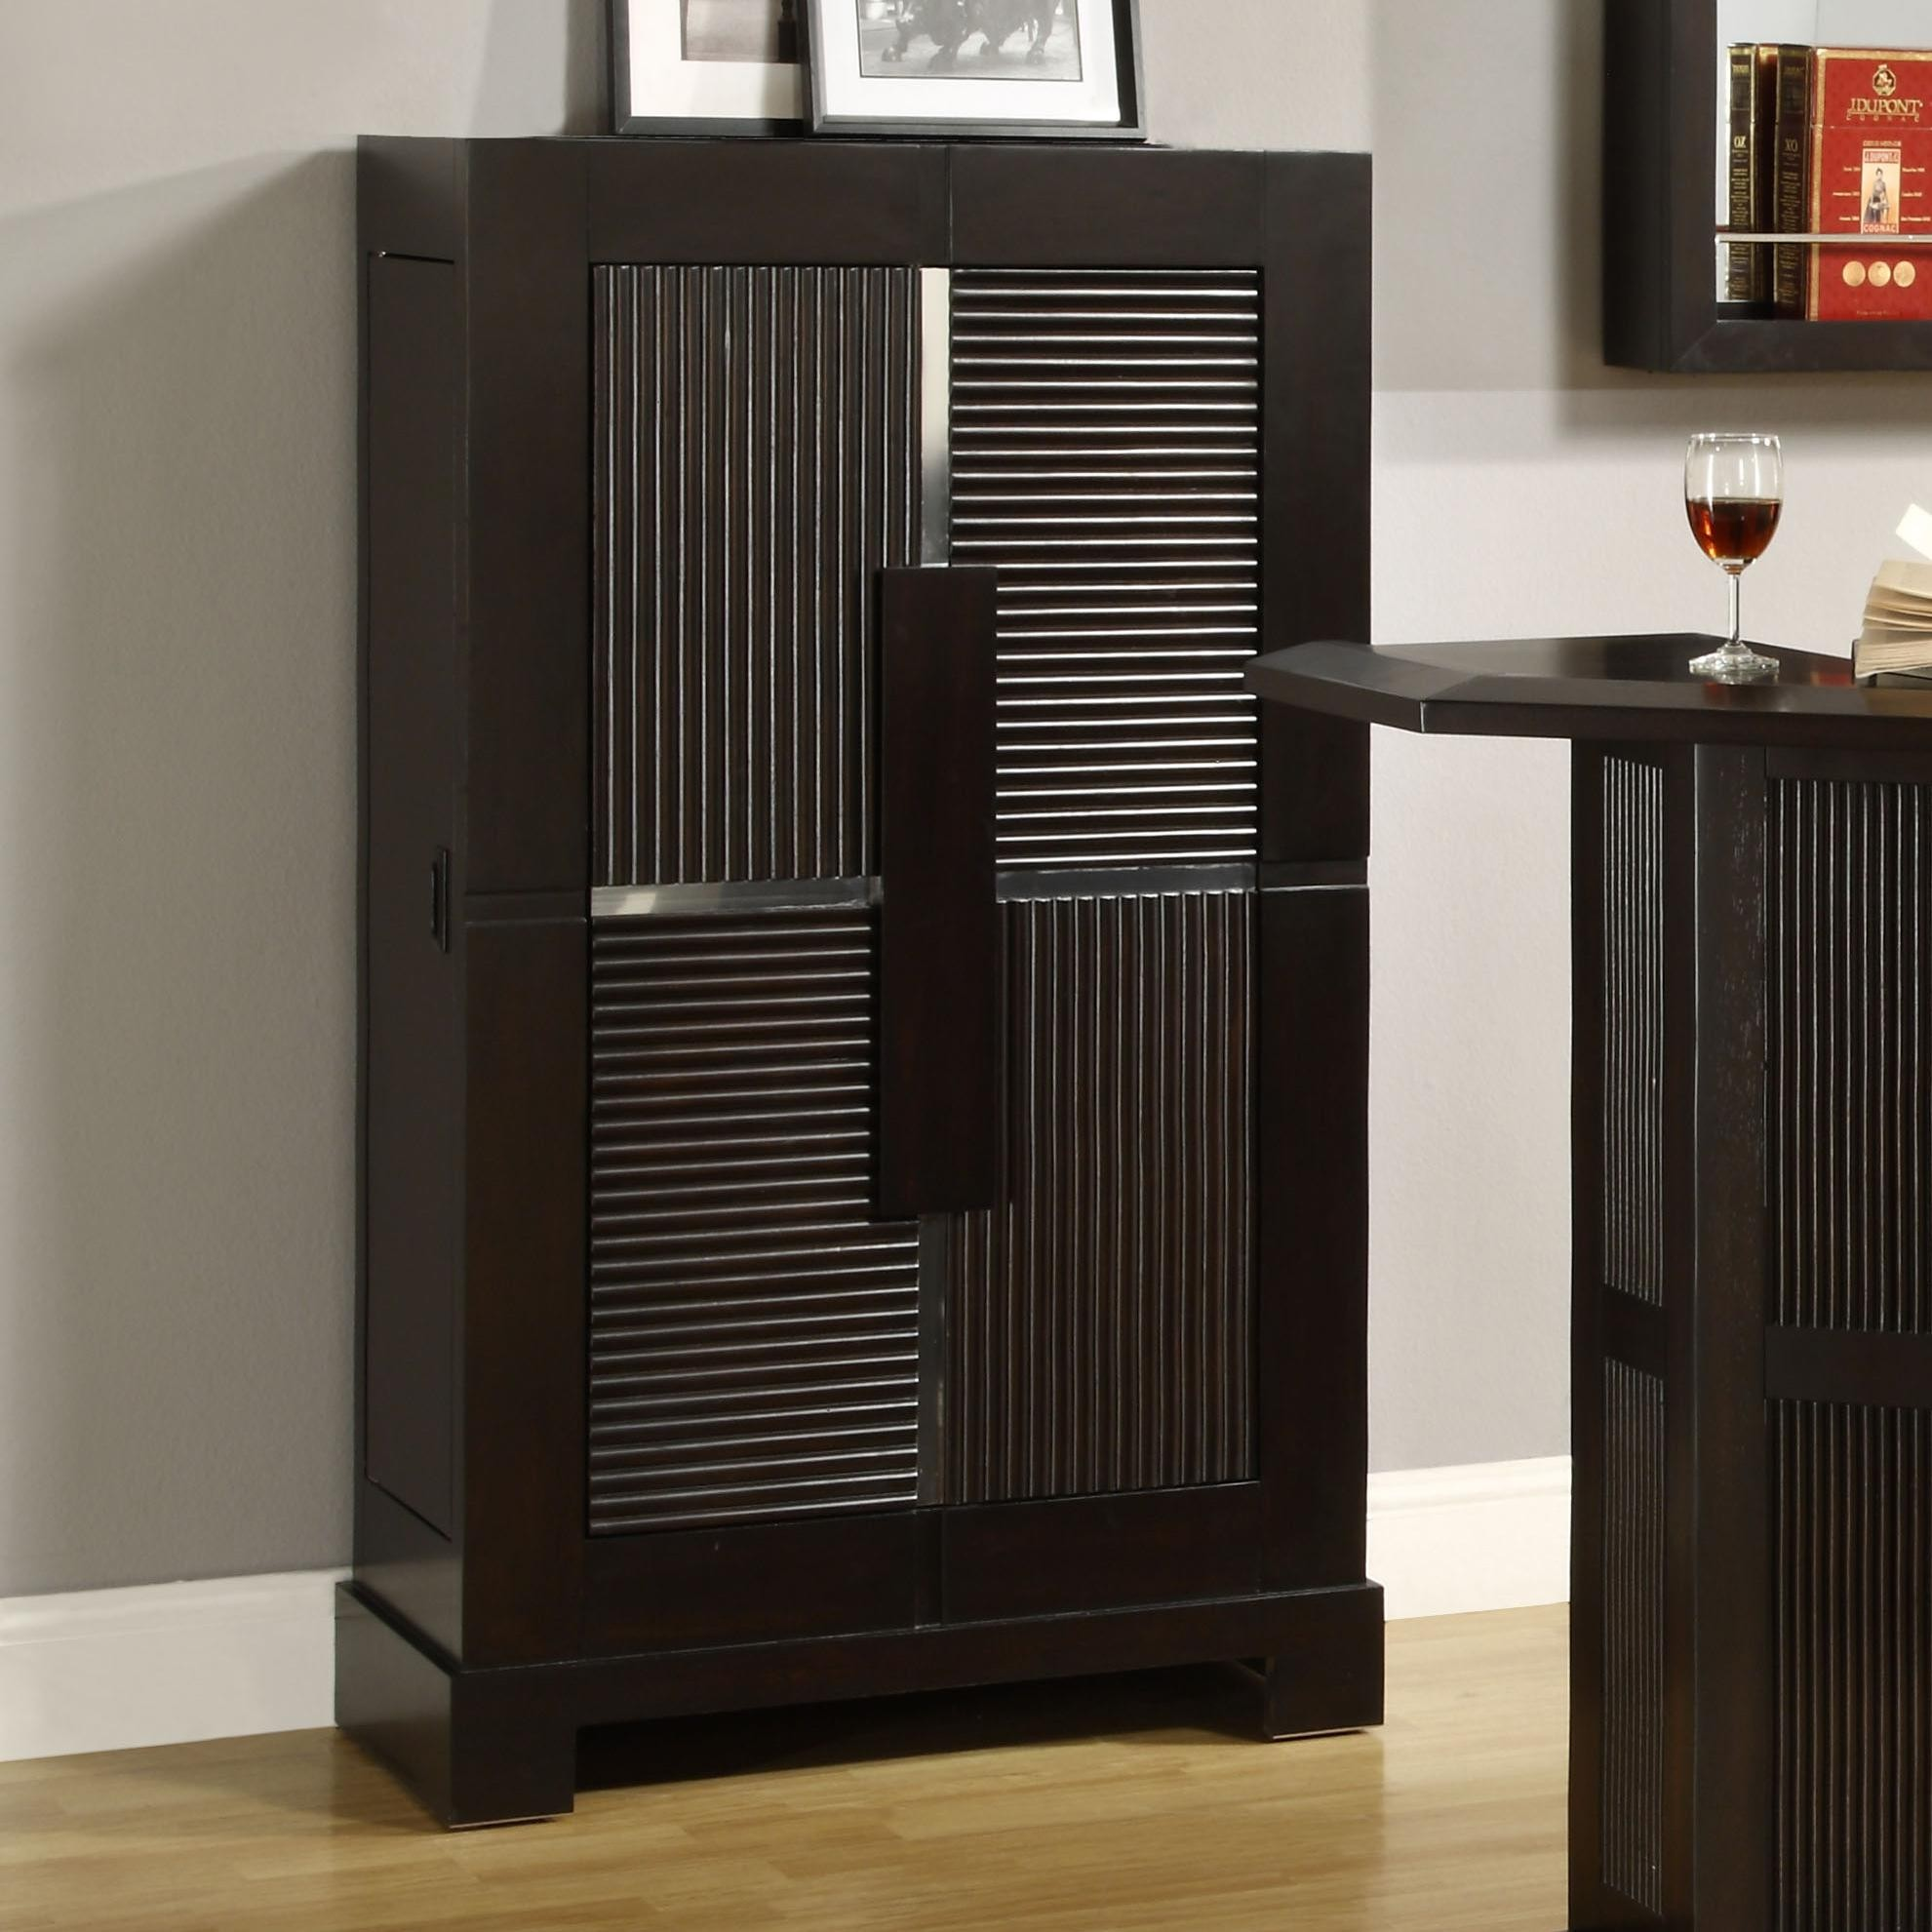 modern bar furniture home. Corner Bar Furniture. Tall Open Unit Furniture P Modern Home